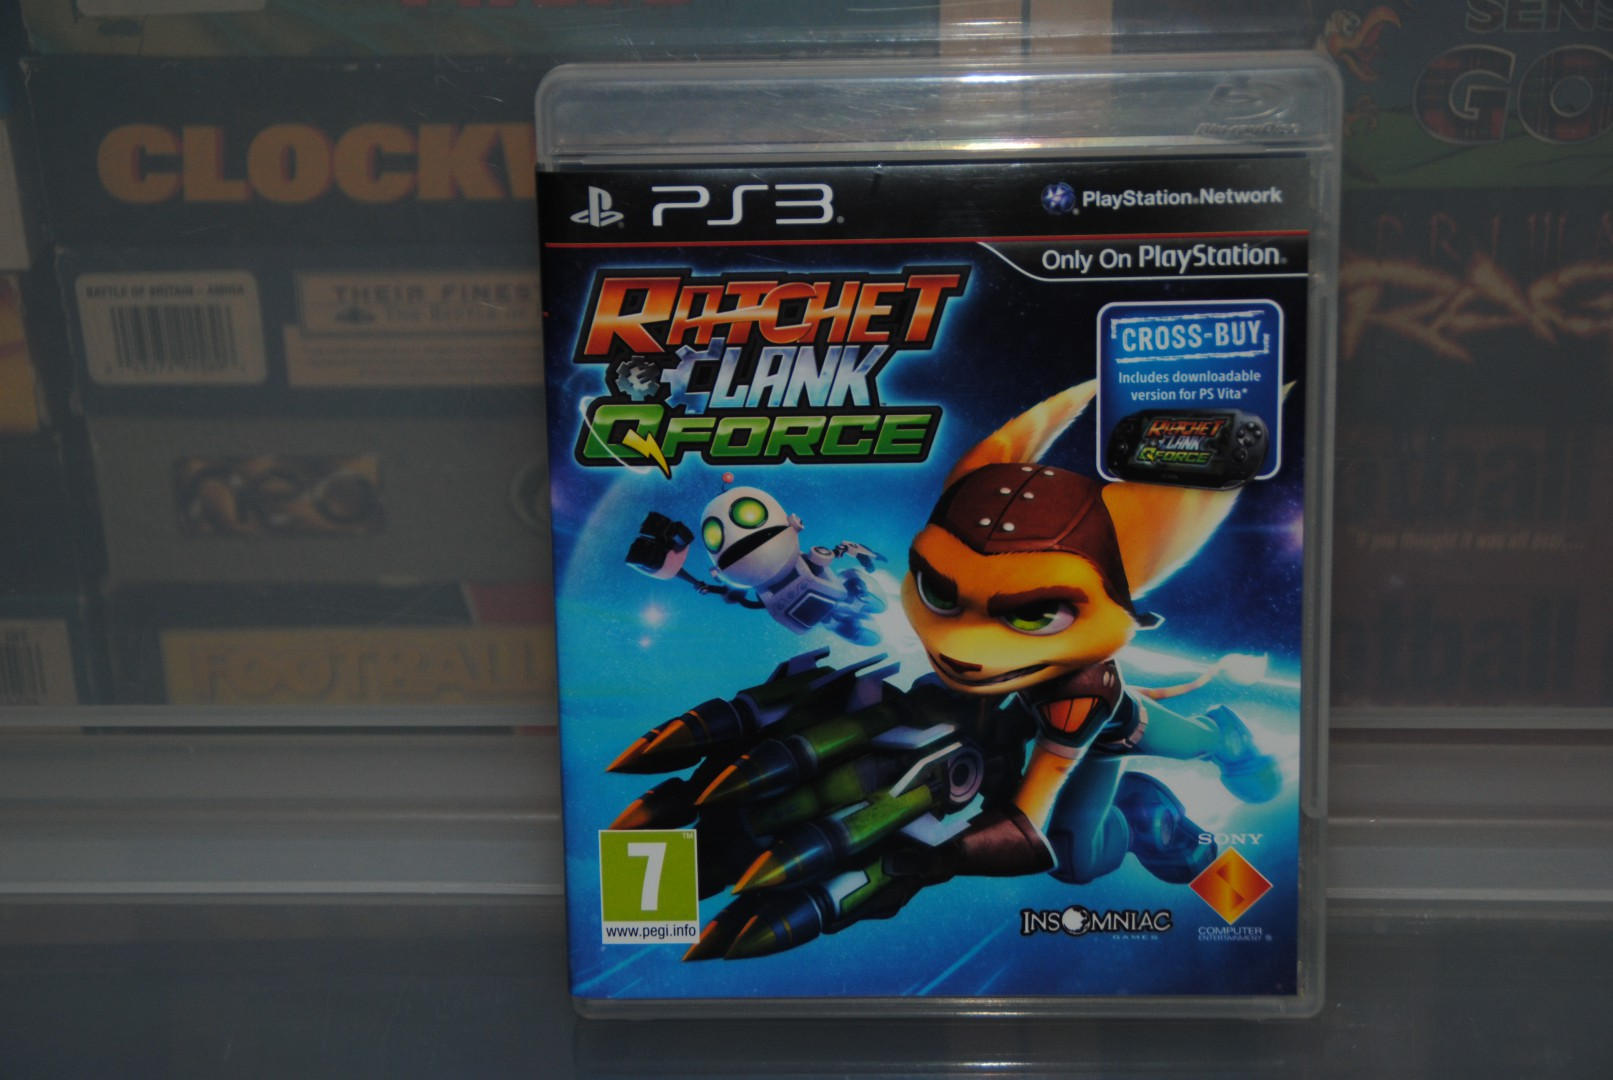 Ratchet & Clank: Q-Force PS3 Release Front.